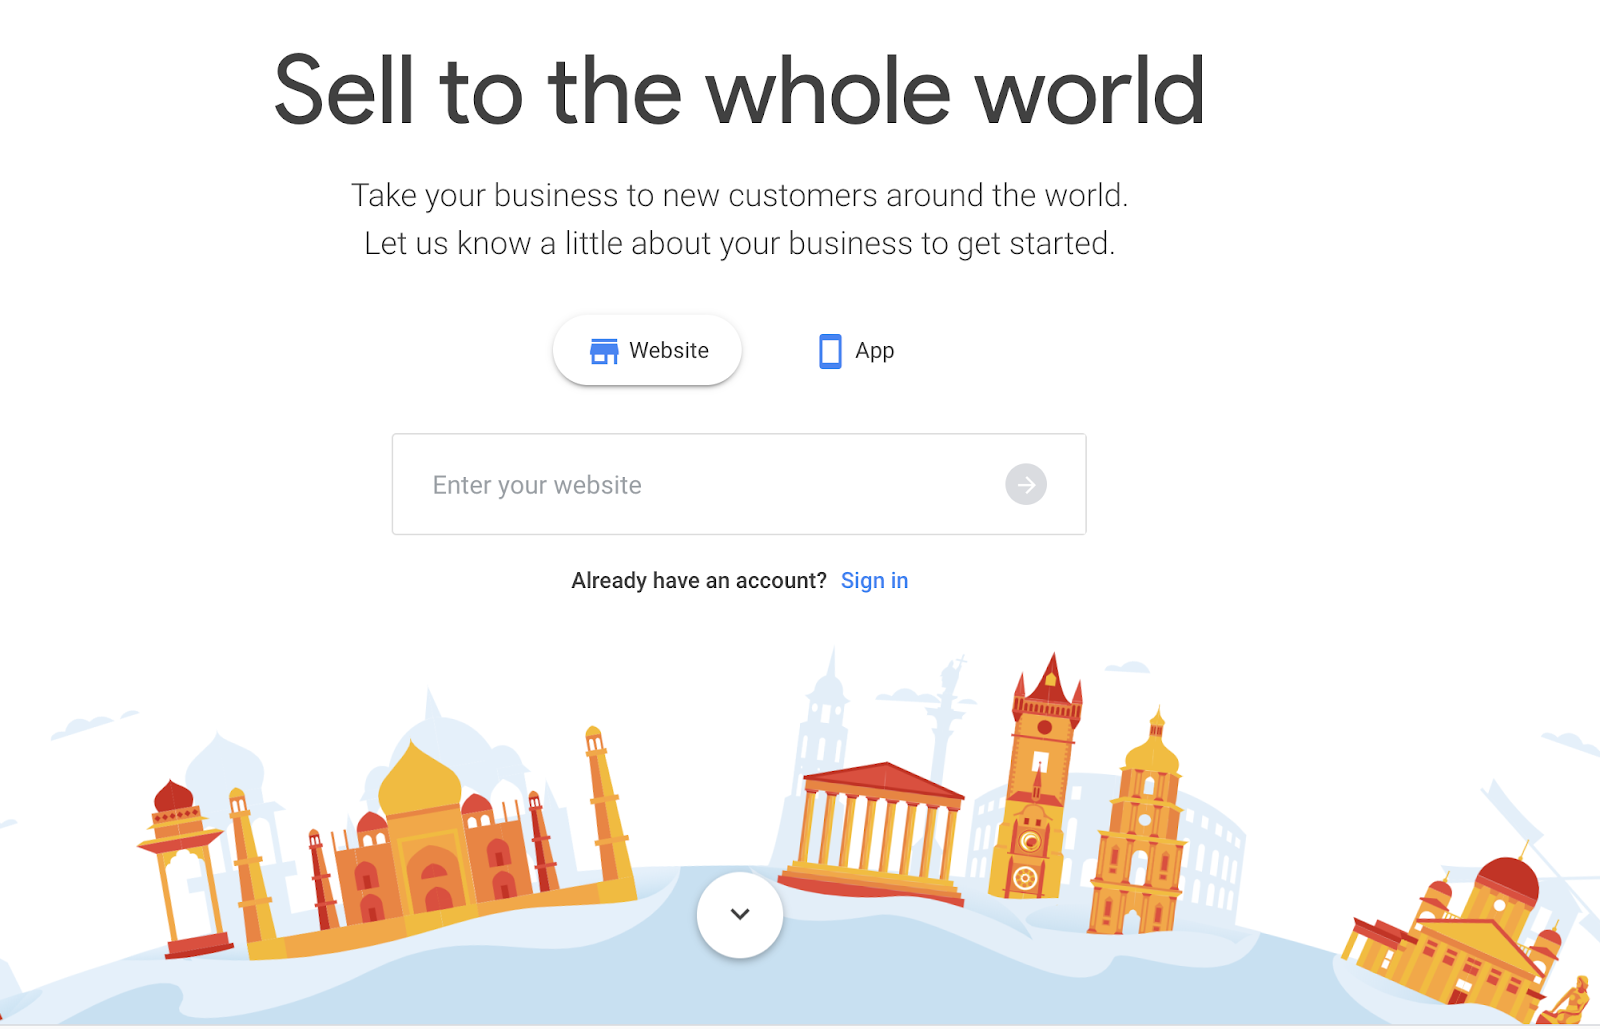 Google Market Finder 5 tips for companies looking to succeed with multilingual PPC campaigns – How Google Tools can help you export internationally blog